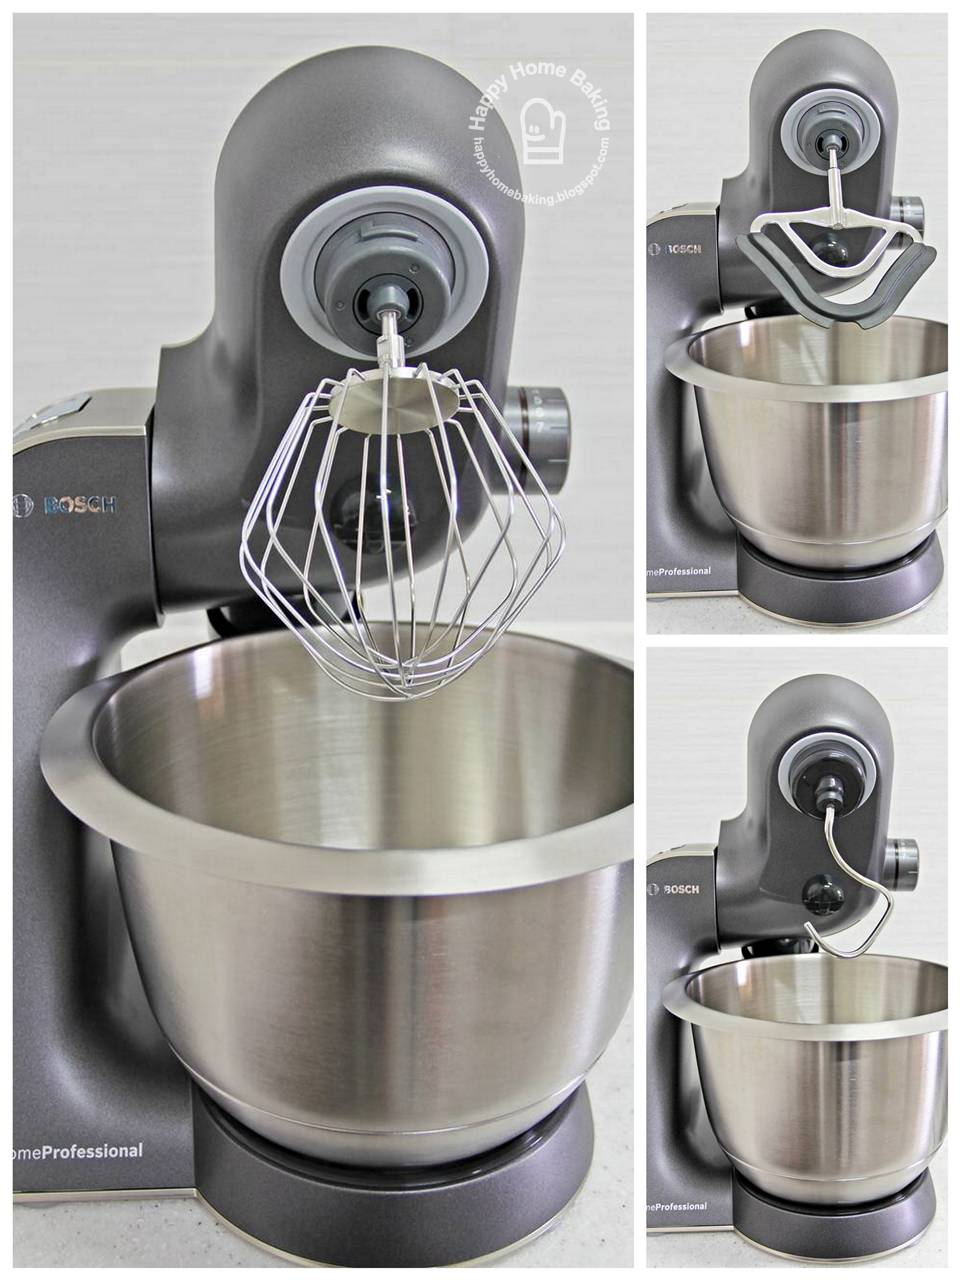 Uncategorized Bosch Kitchen Appliances Reviews happy home baking my new kitchen helper i must say am very glad that made the right decision when received complimentary set of machine love sleek modern design this mixer